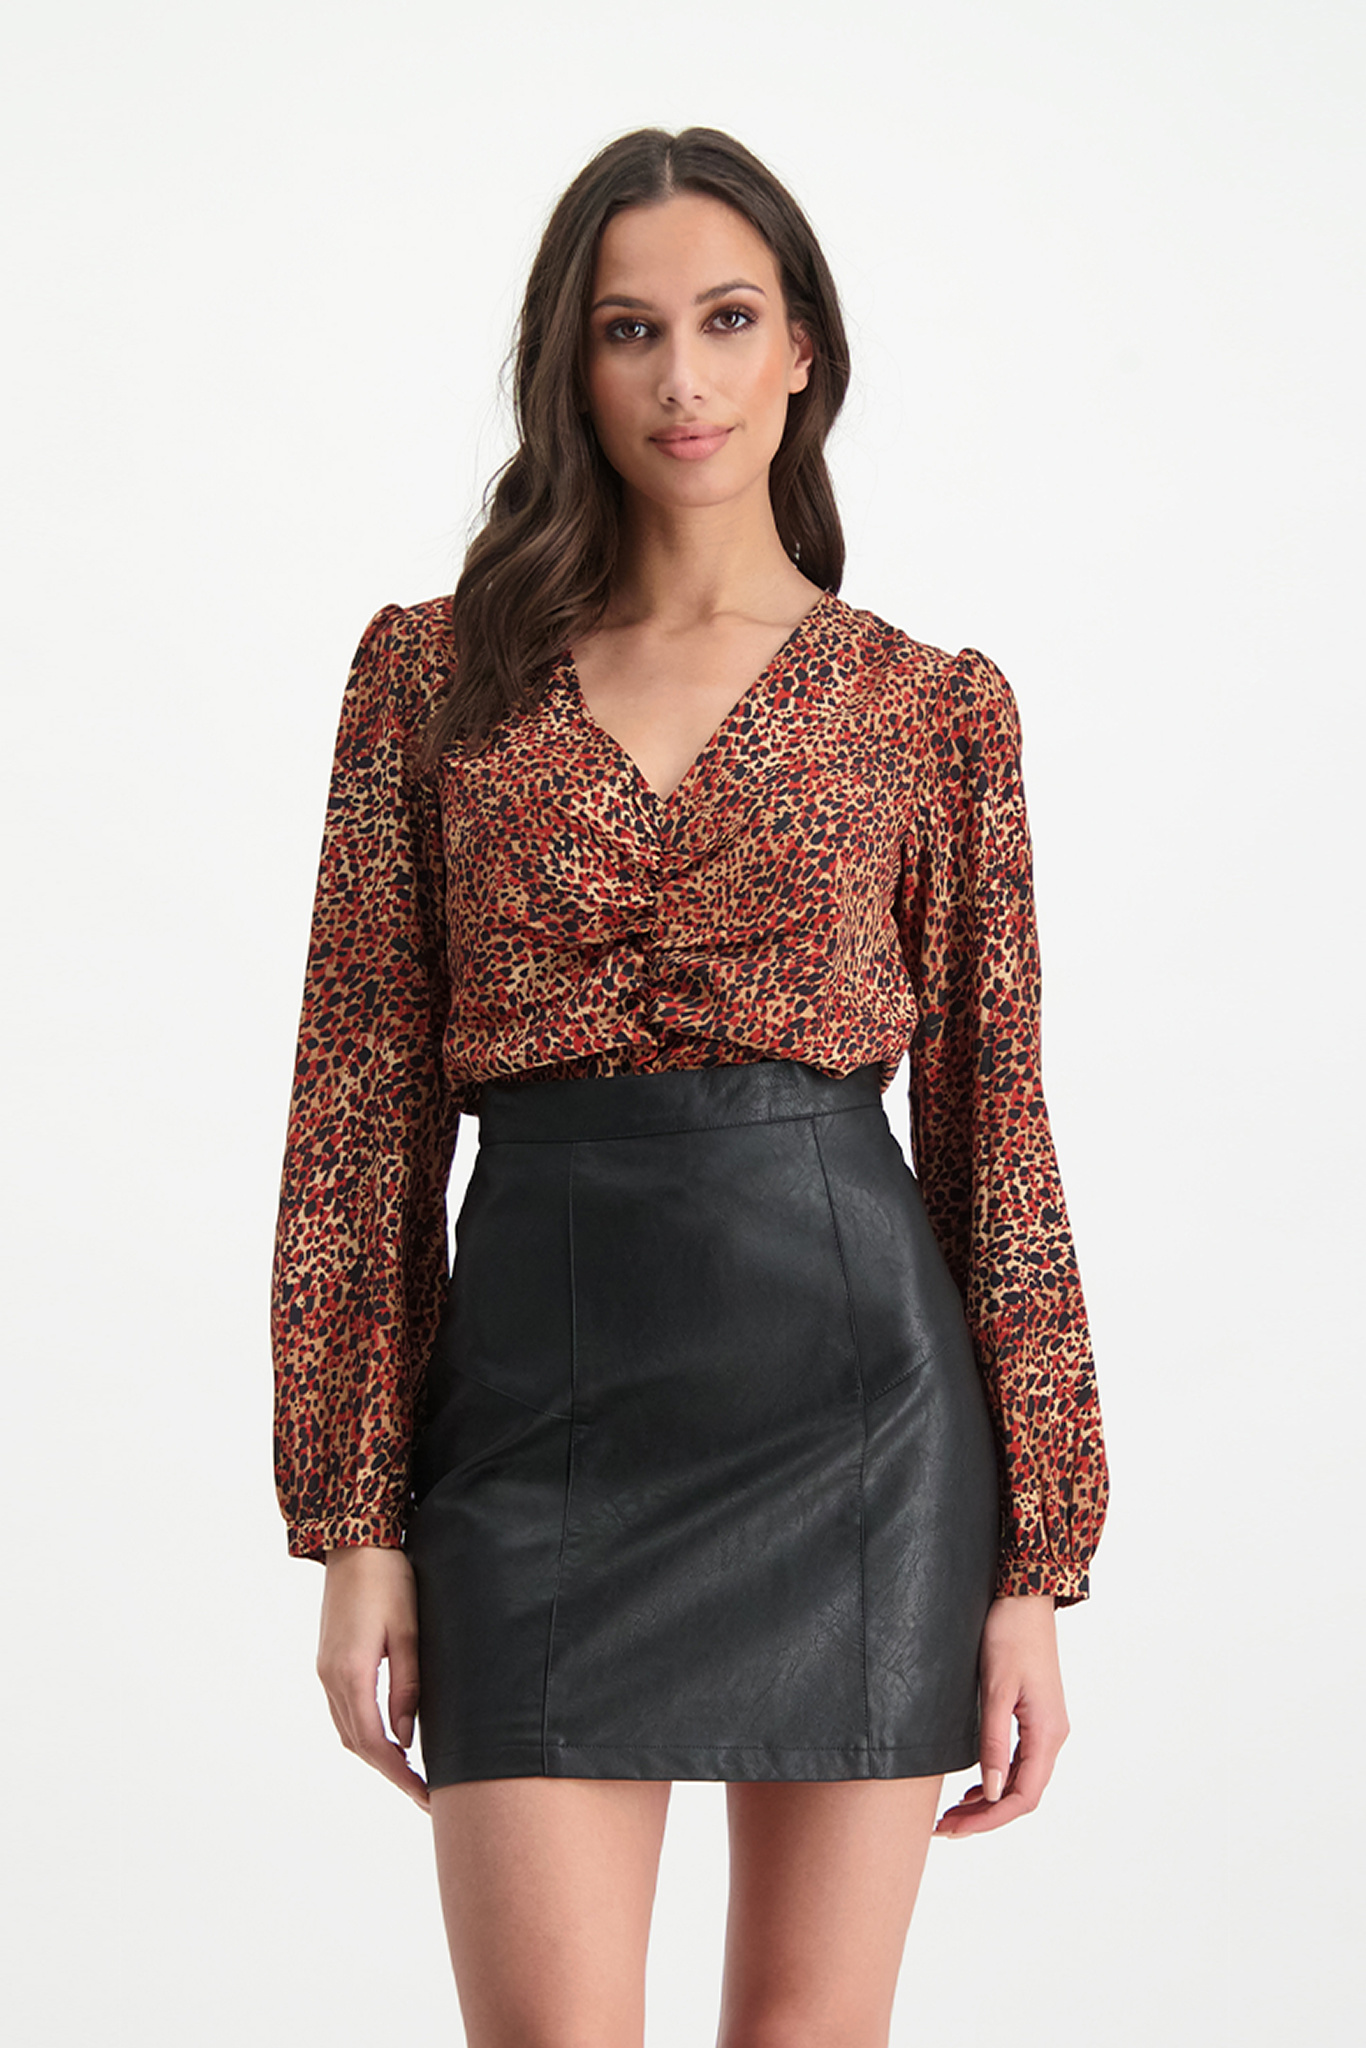 Lofty Manner Red Panther Print Top Caitlin